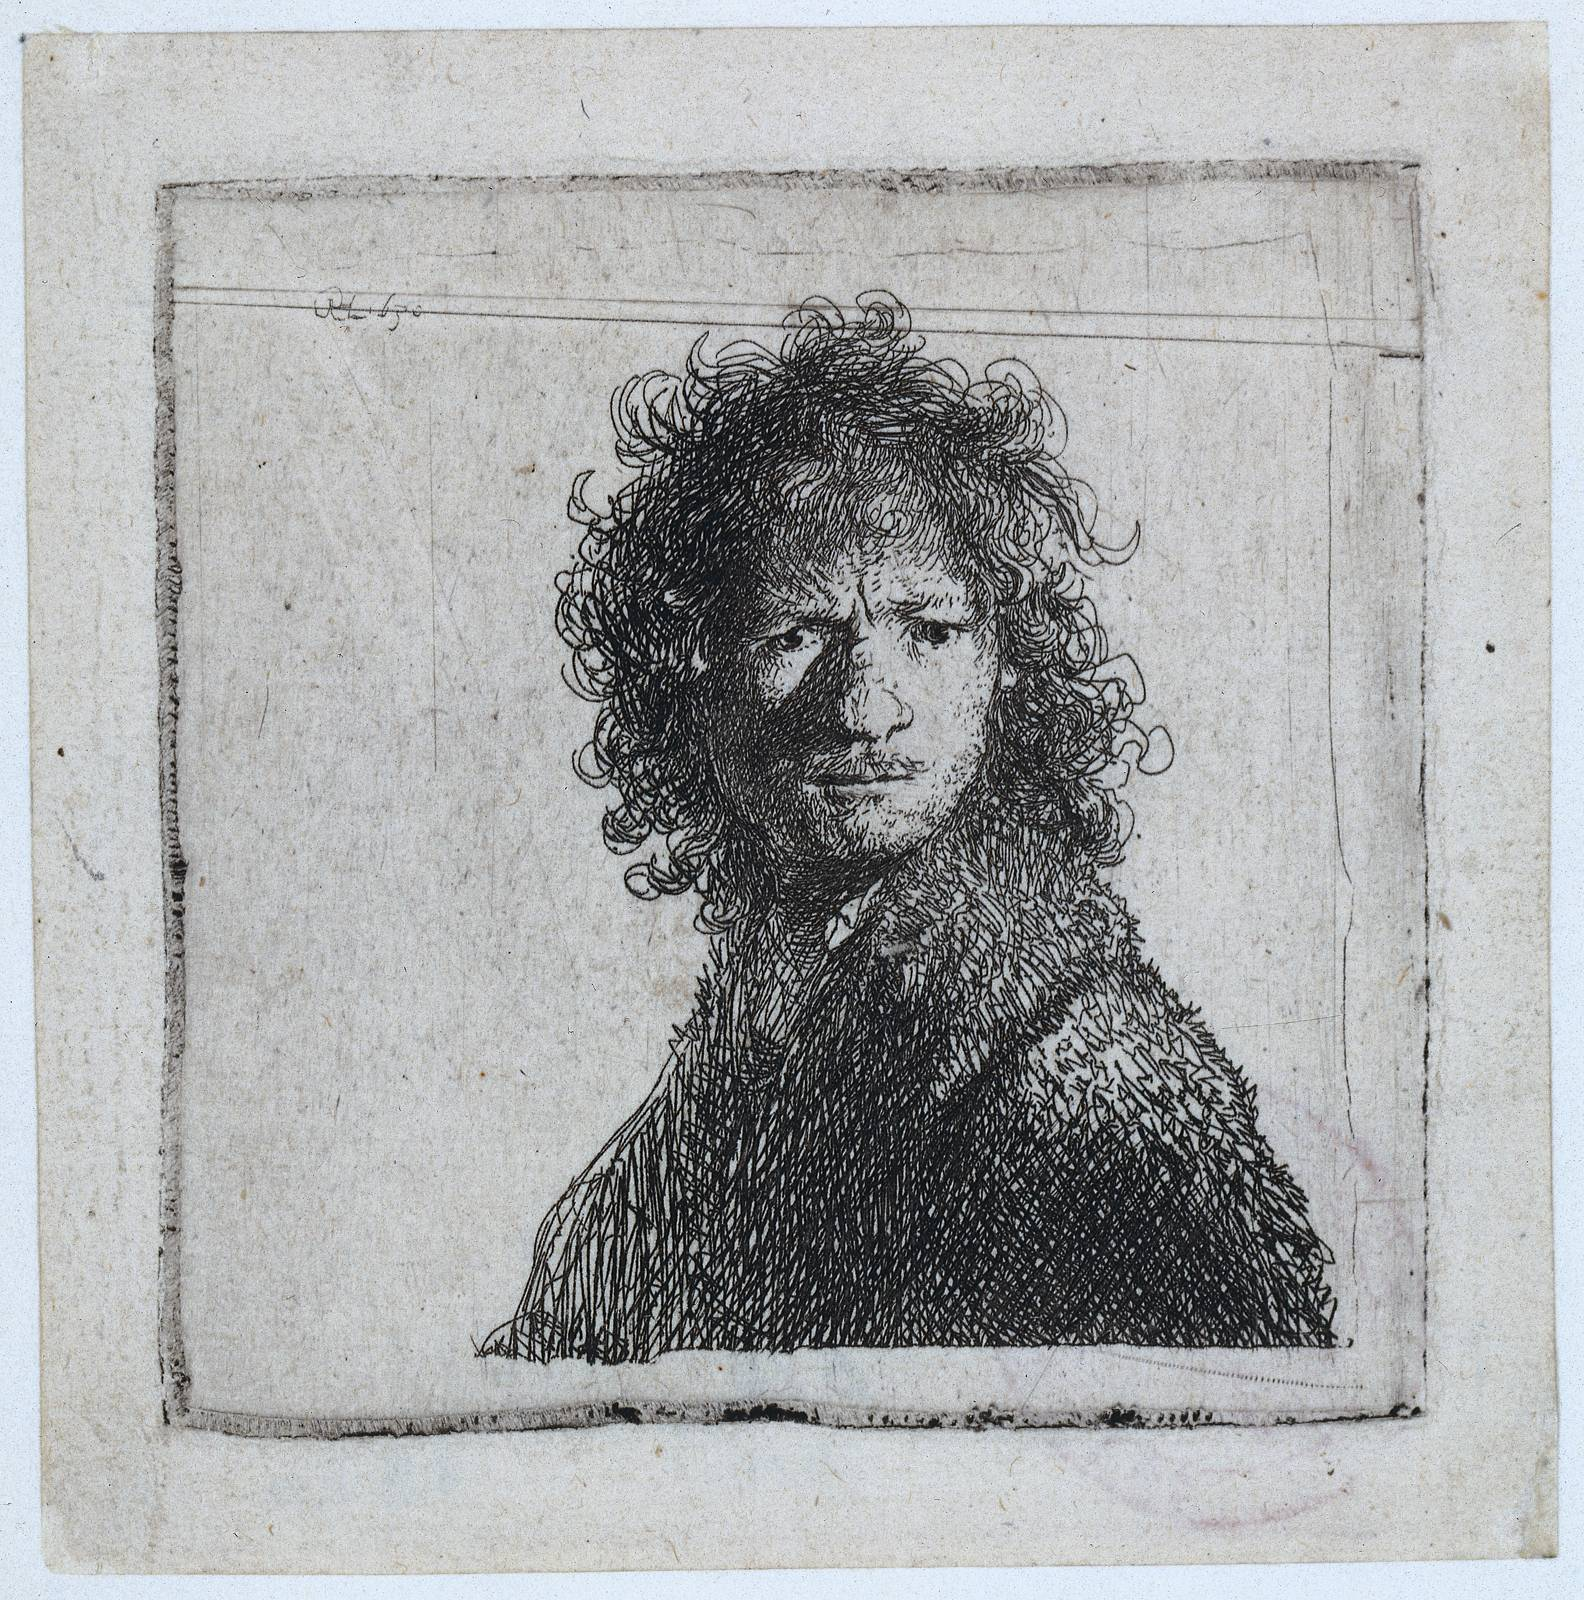 Self-portrait, Frowning, 1630 - Rembrandt - WikiArt.org